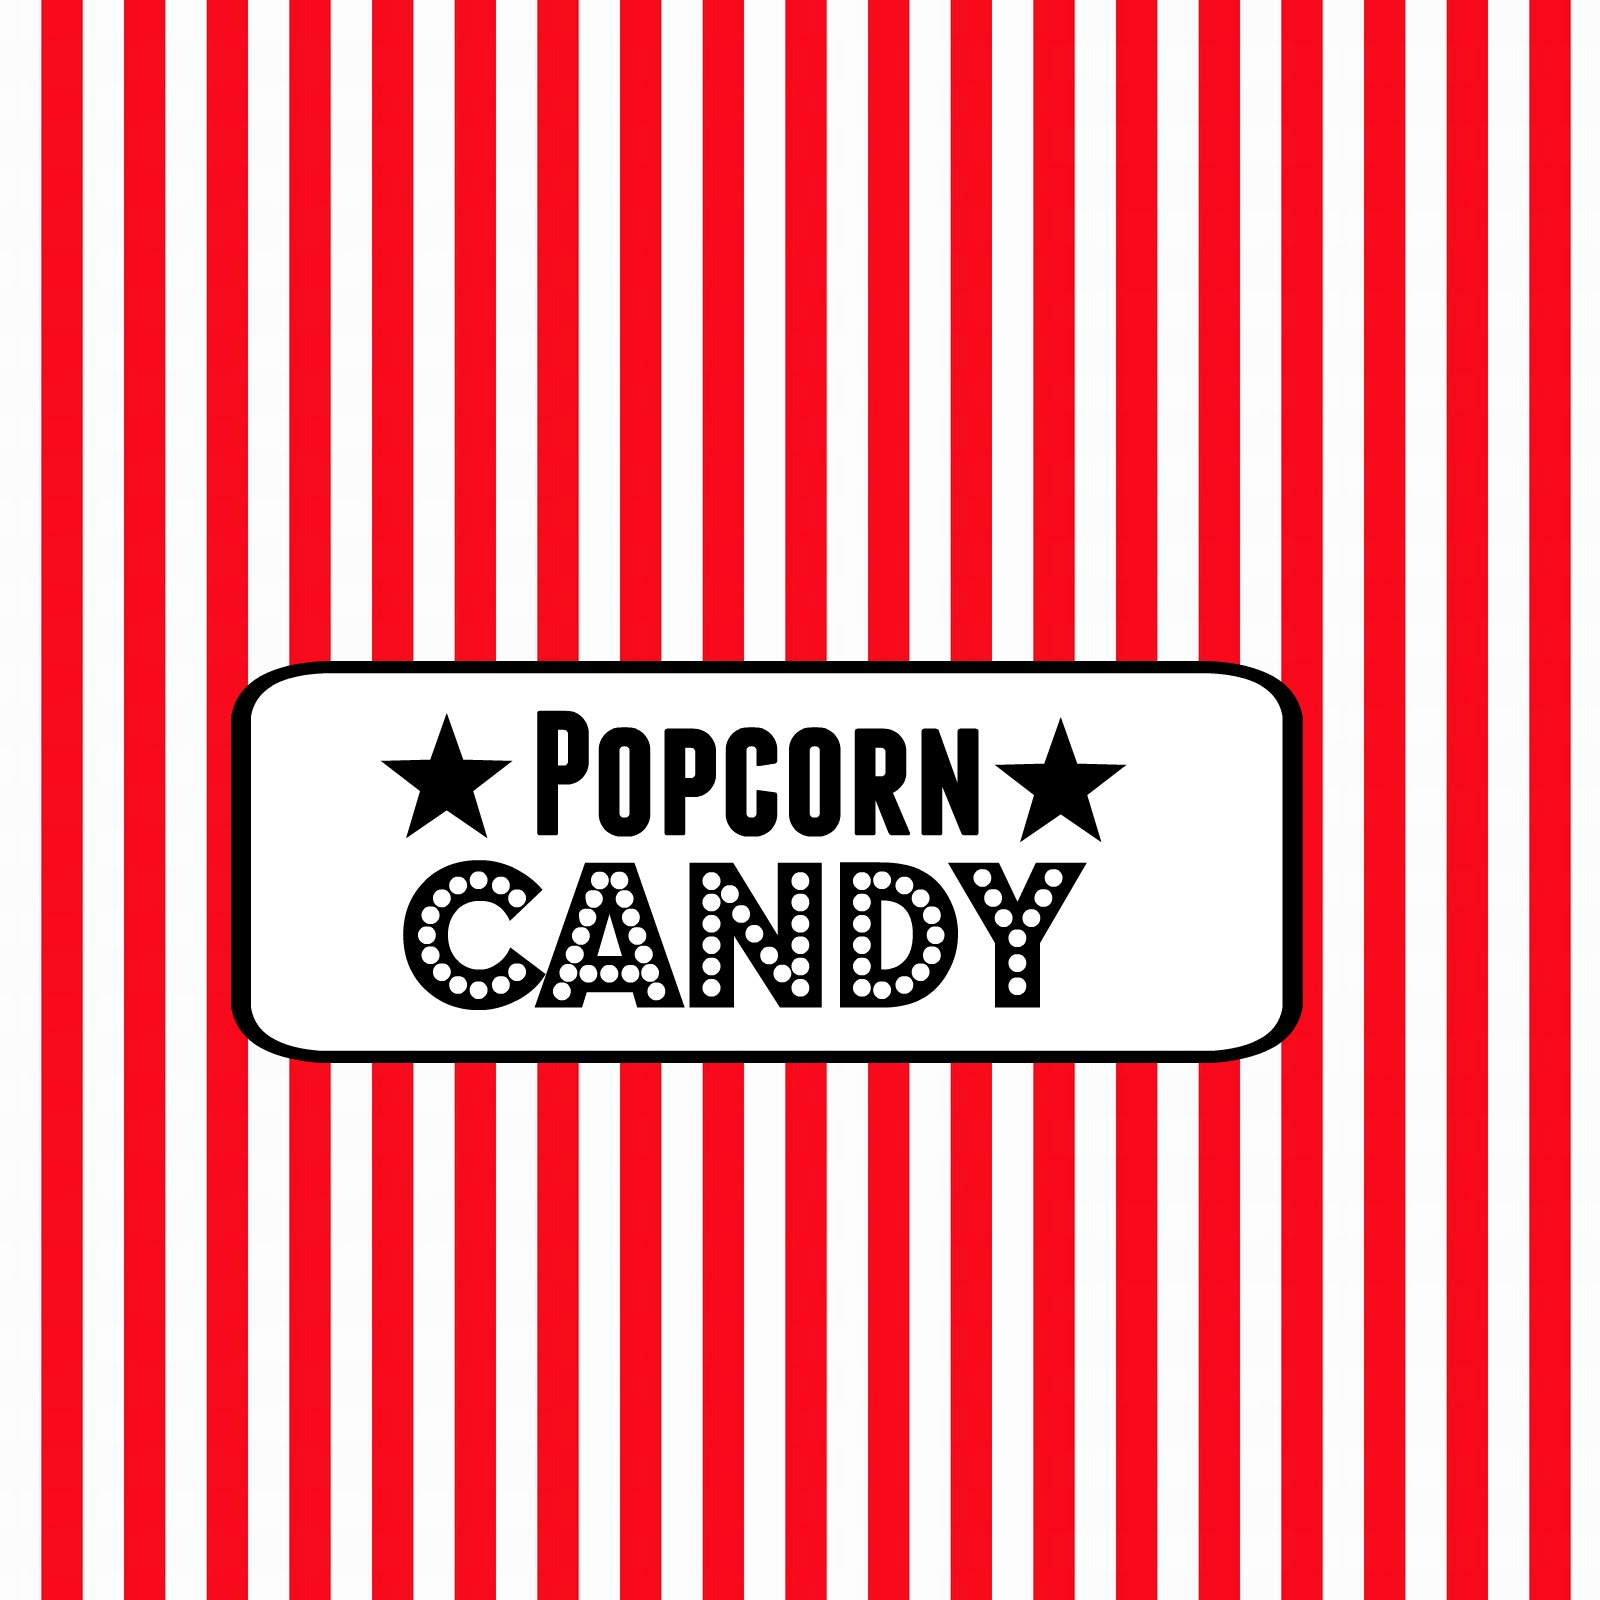 Popcorn Bar Movie Night Kid Birthday Free Printable Download Food Label Red White Stripe